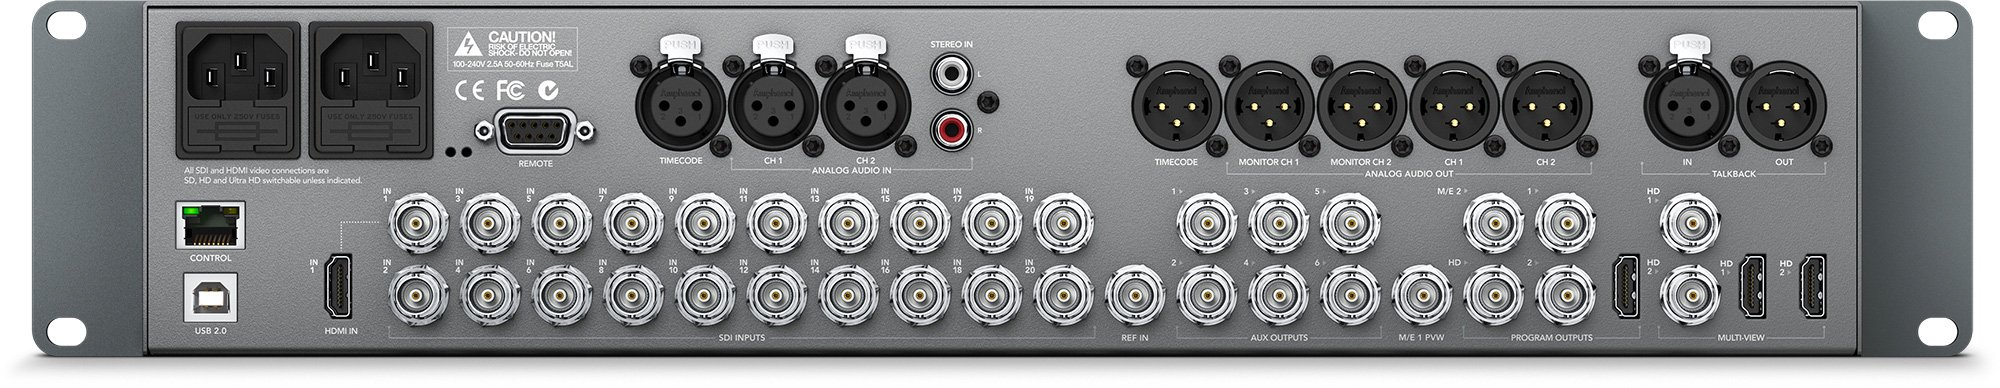 Blackmagic Design Atem Production Studio K Price